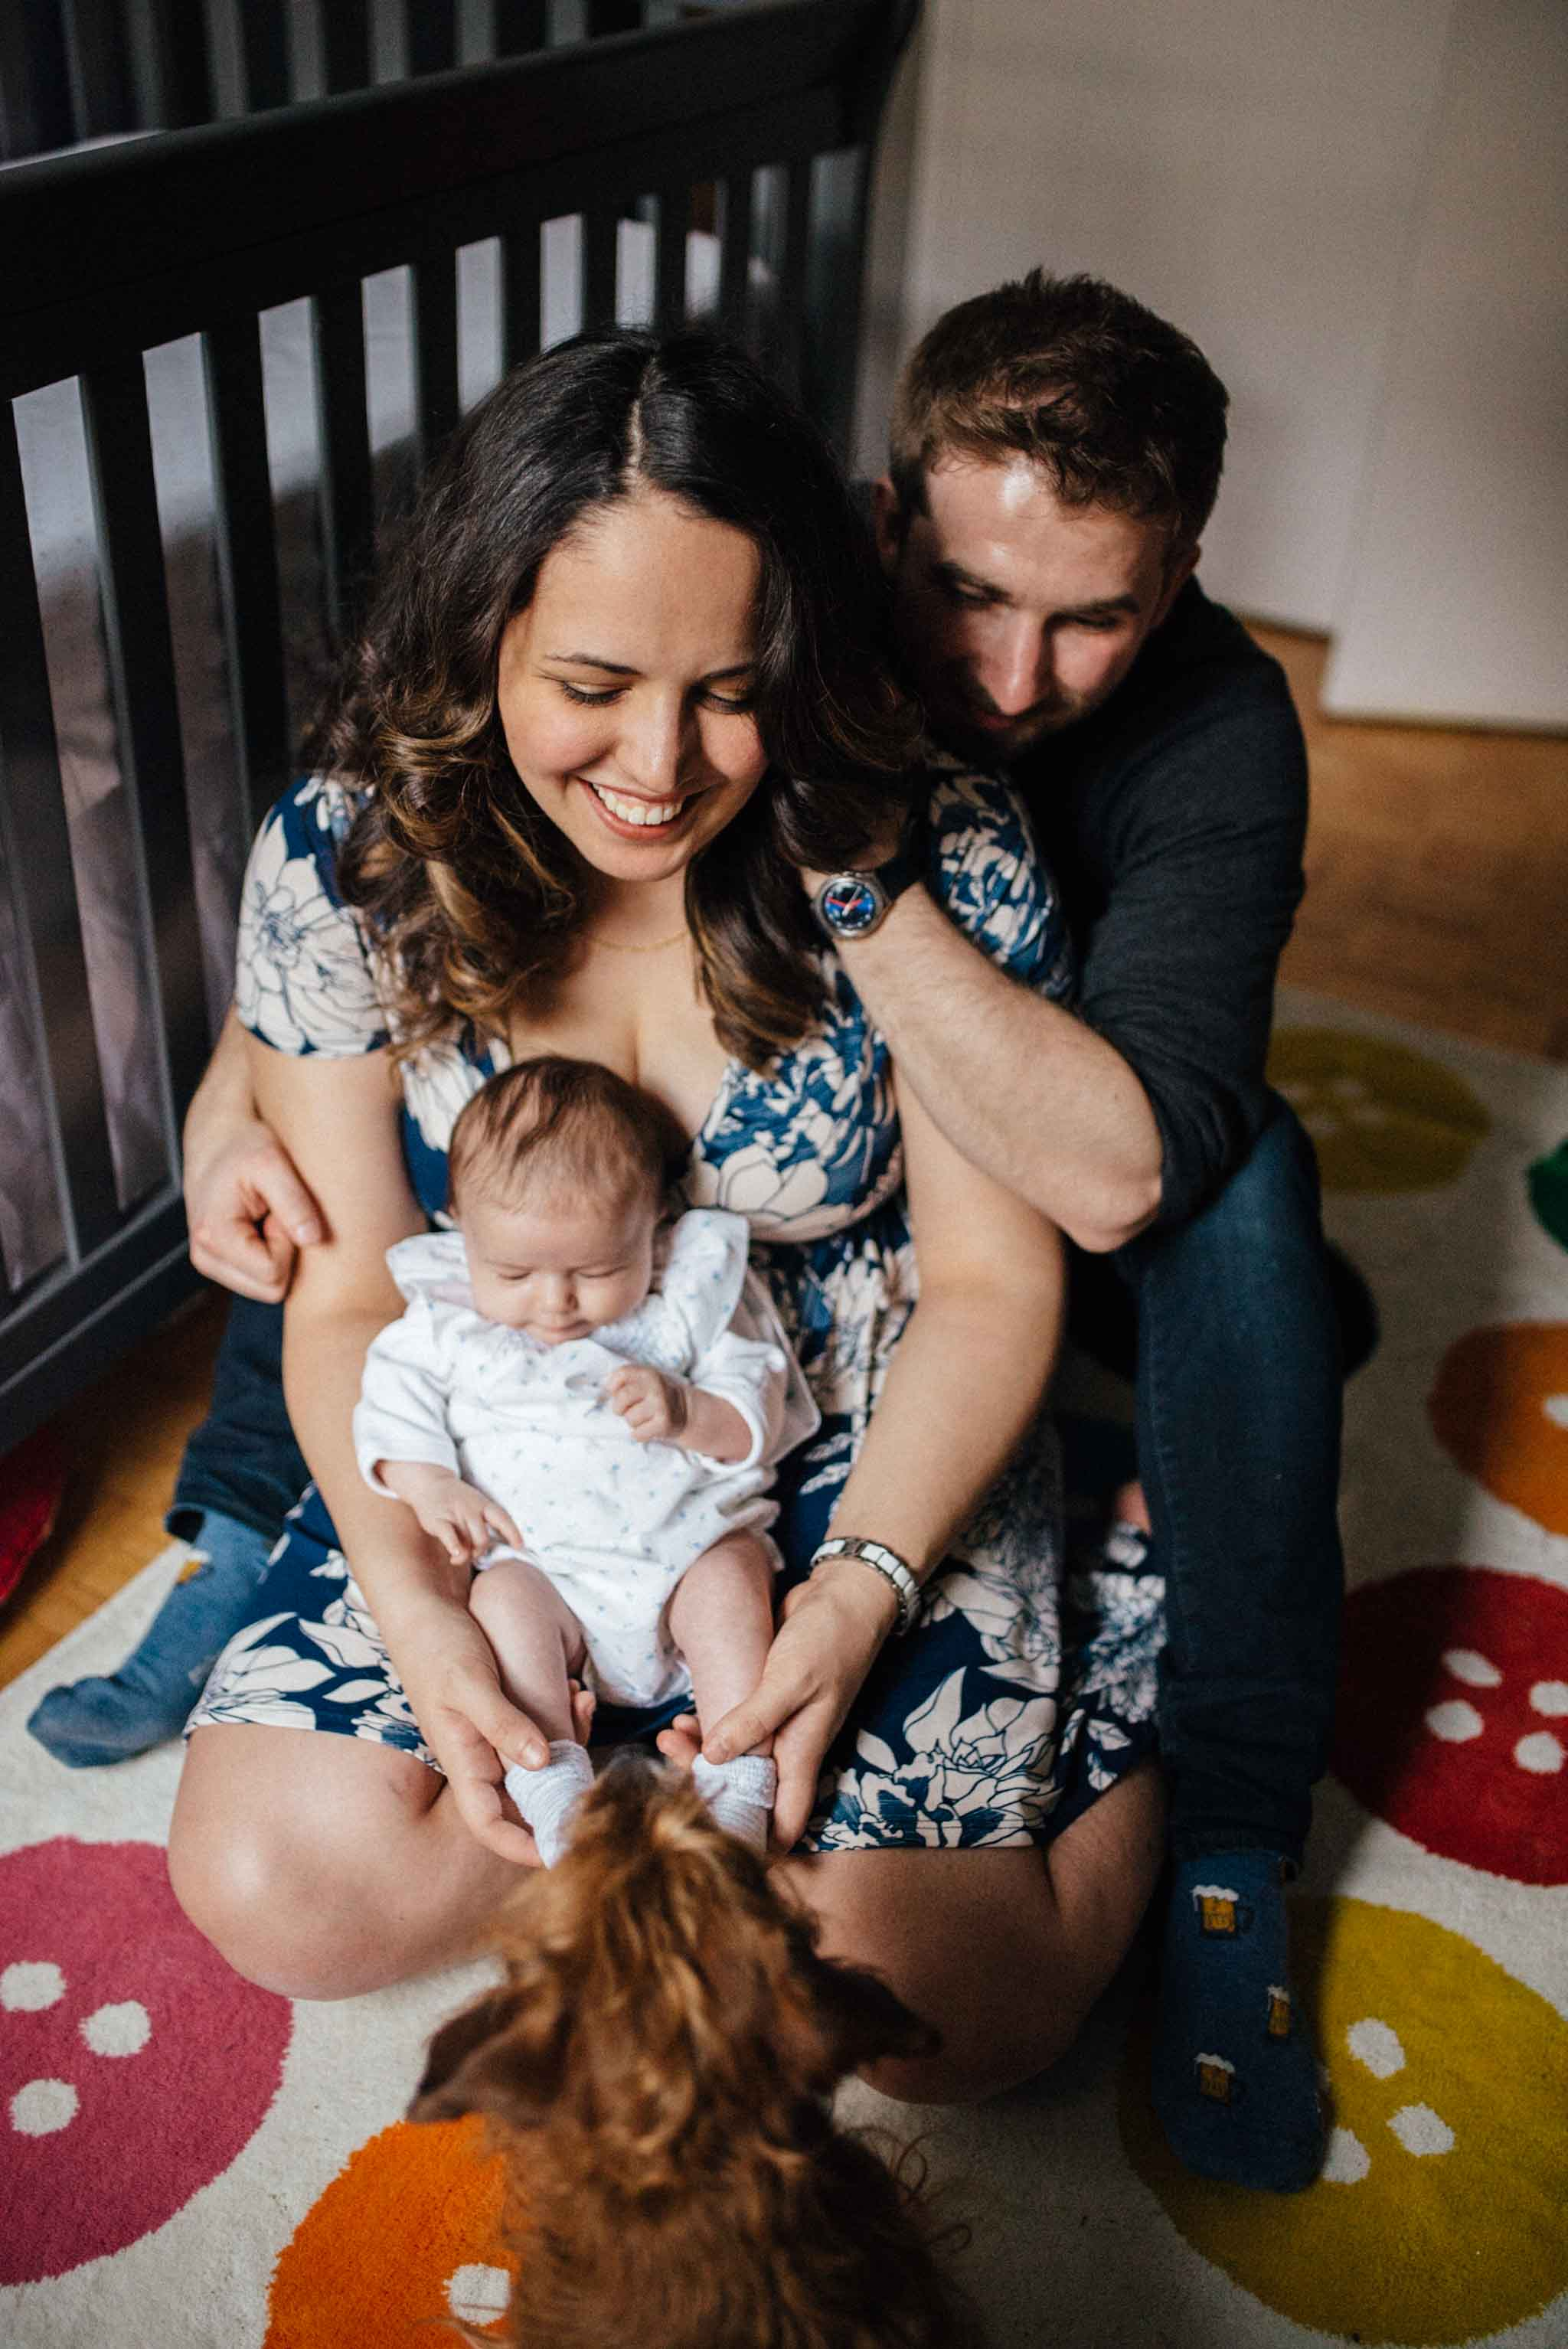 In-home lifestyle family photography | Olive Photography Toronto